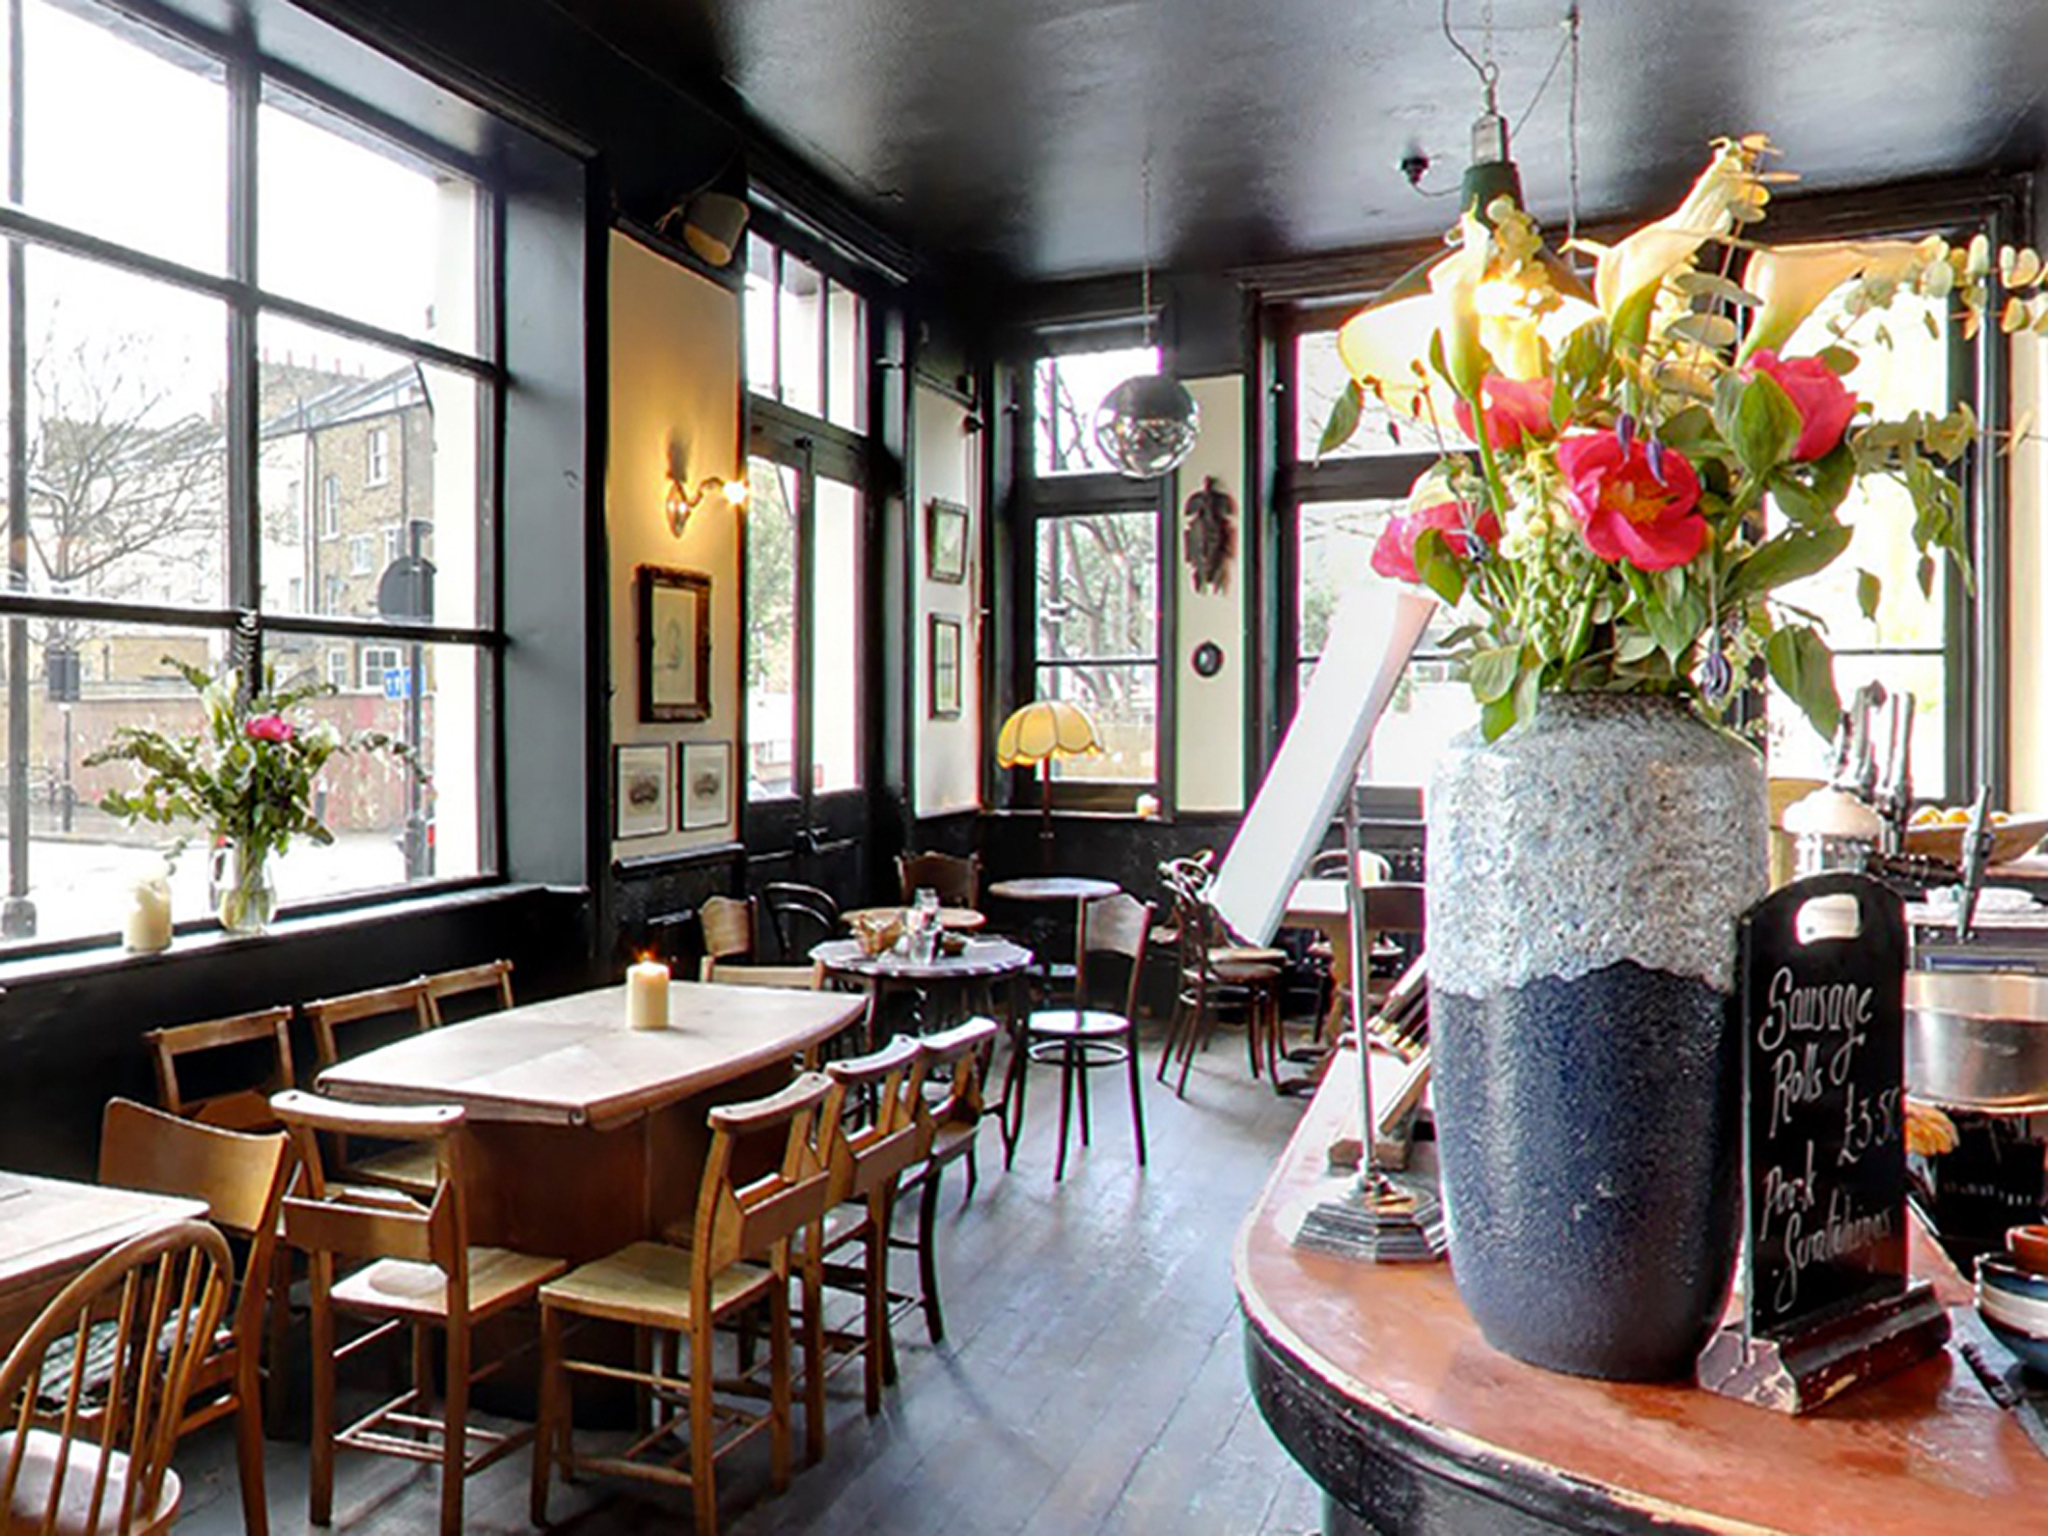 The 100 best bars and pubs in London - Spurstowe Arms, Hackney